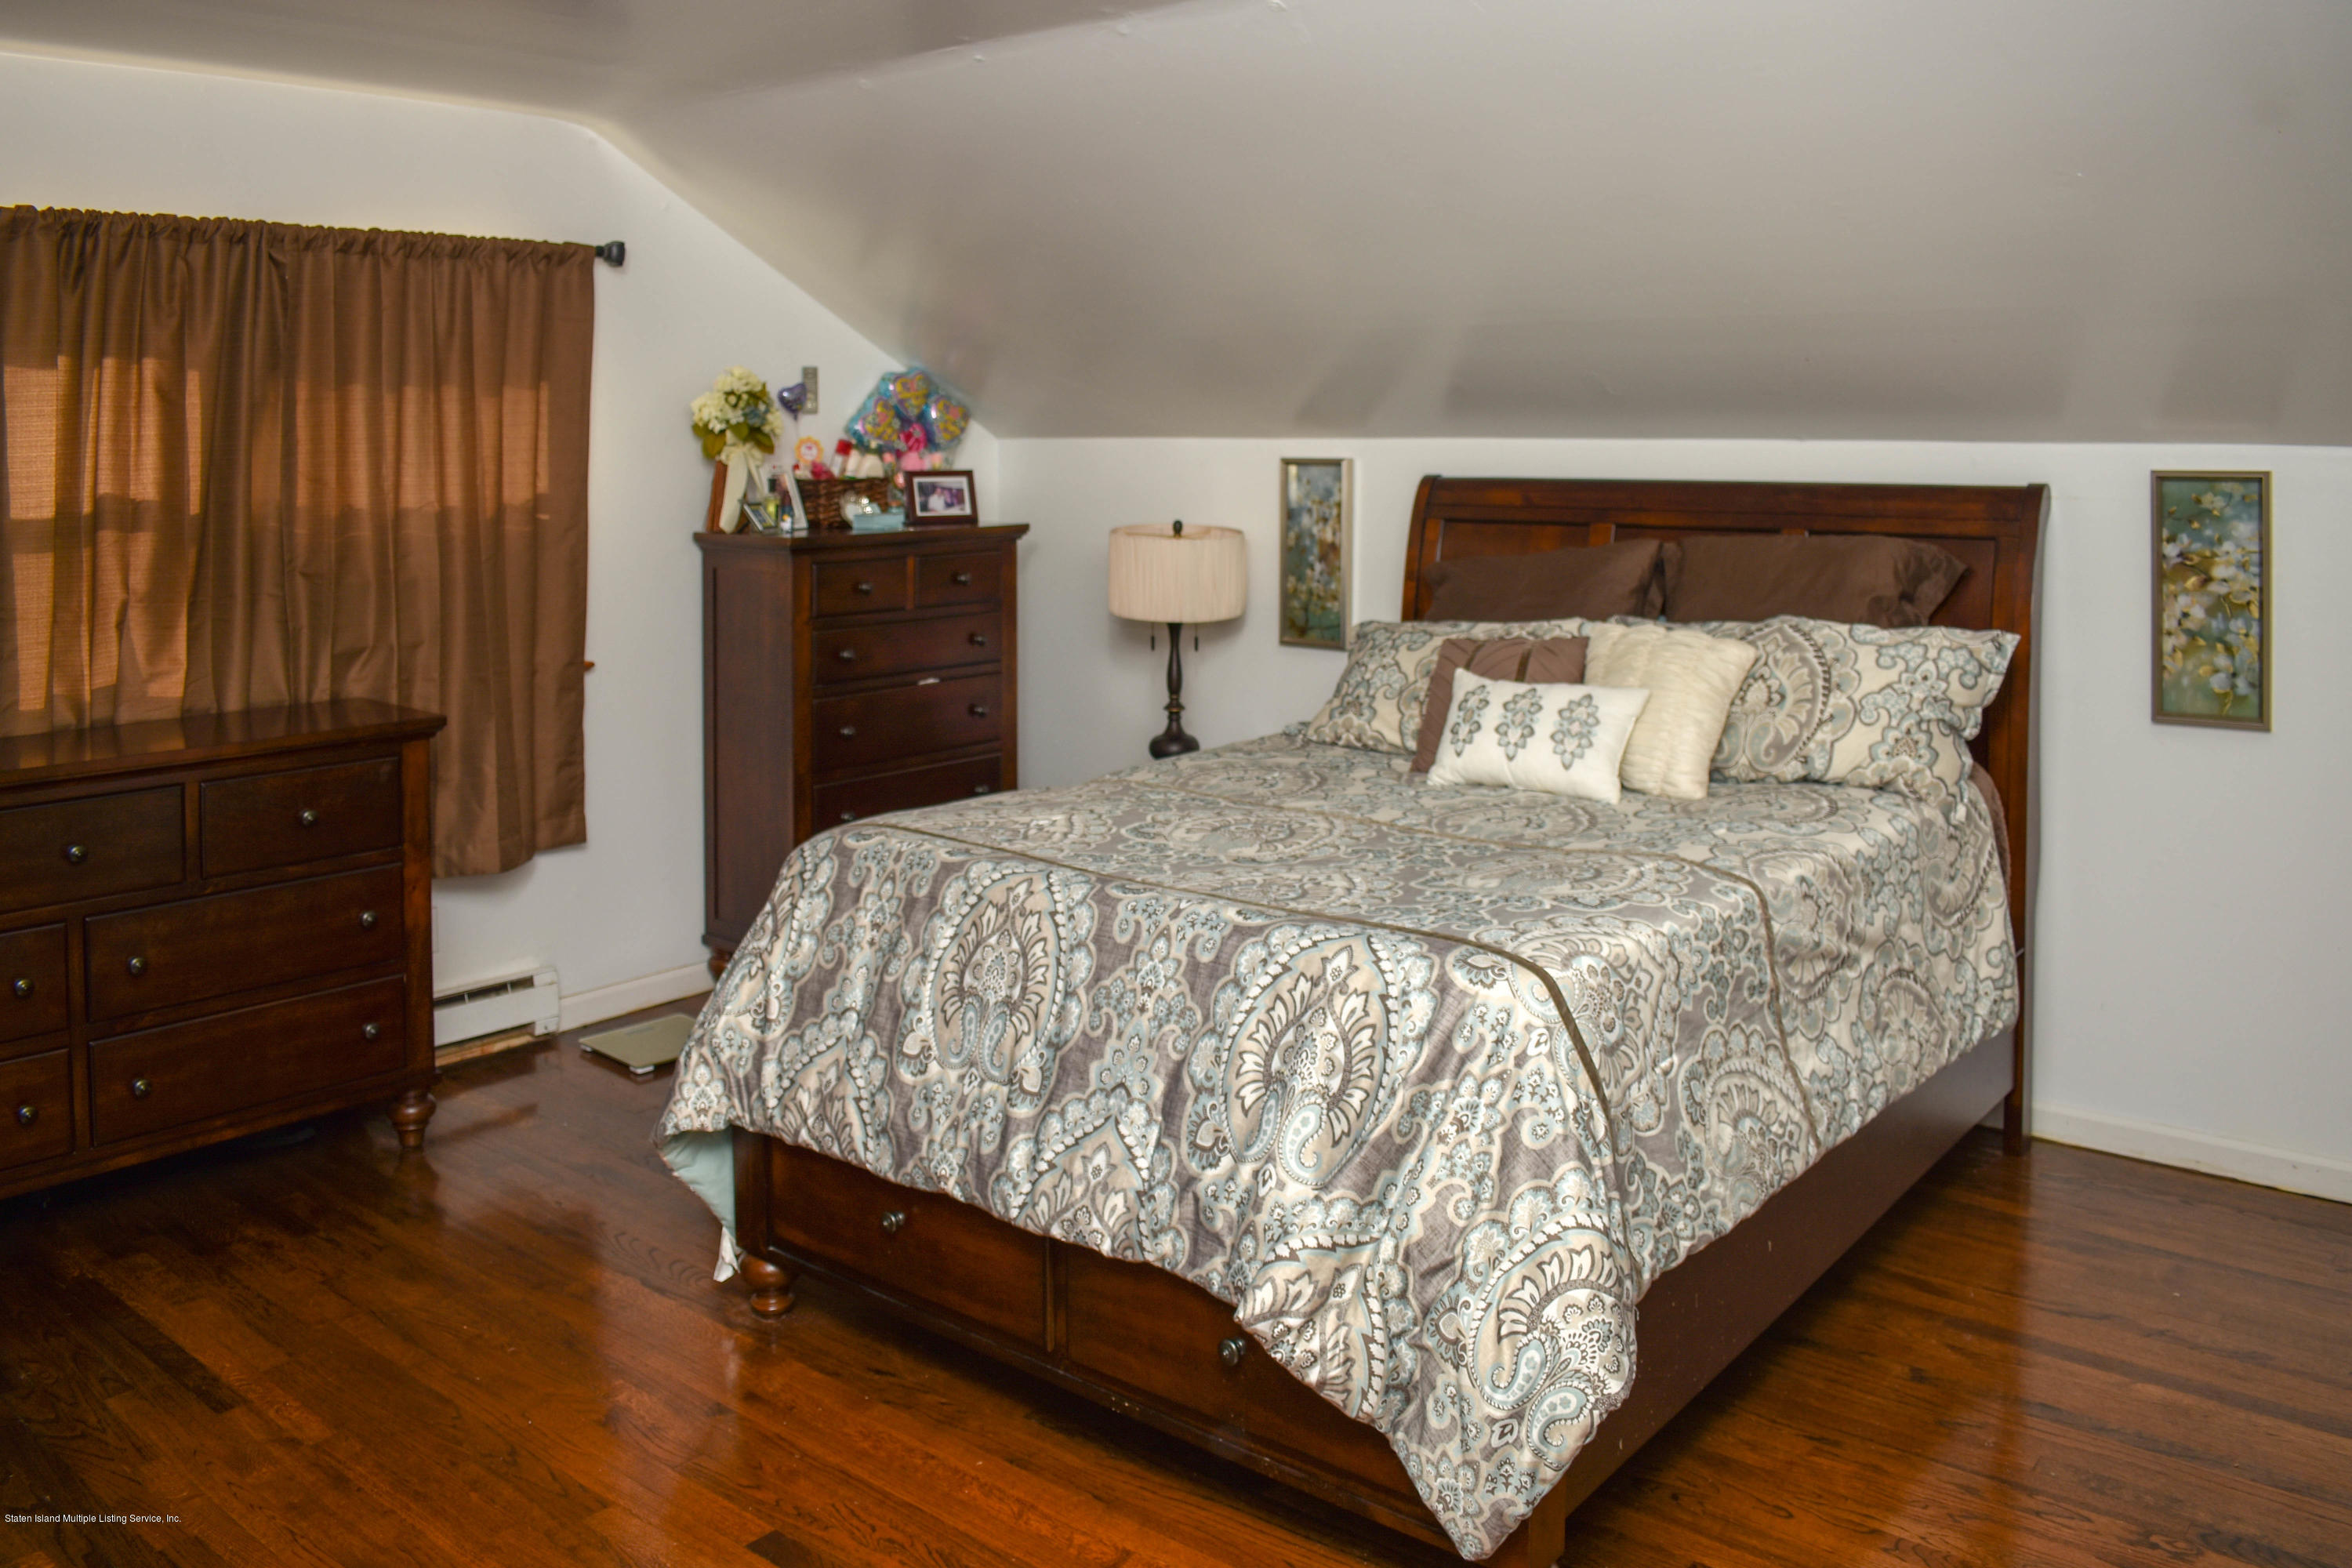 Single Family - Detached 71 Excelsior Avenue  Staten Island, NY 10309, MLS-1126131-12